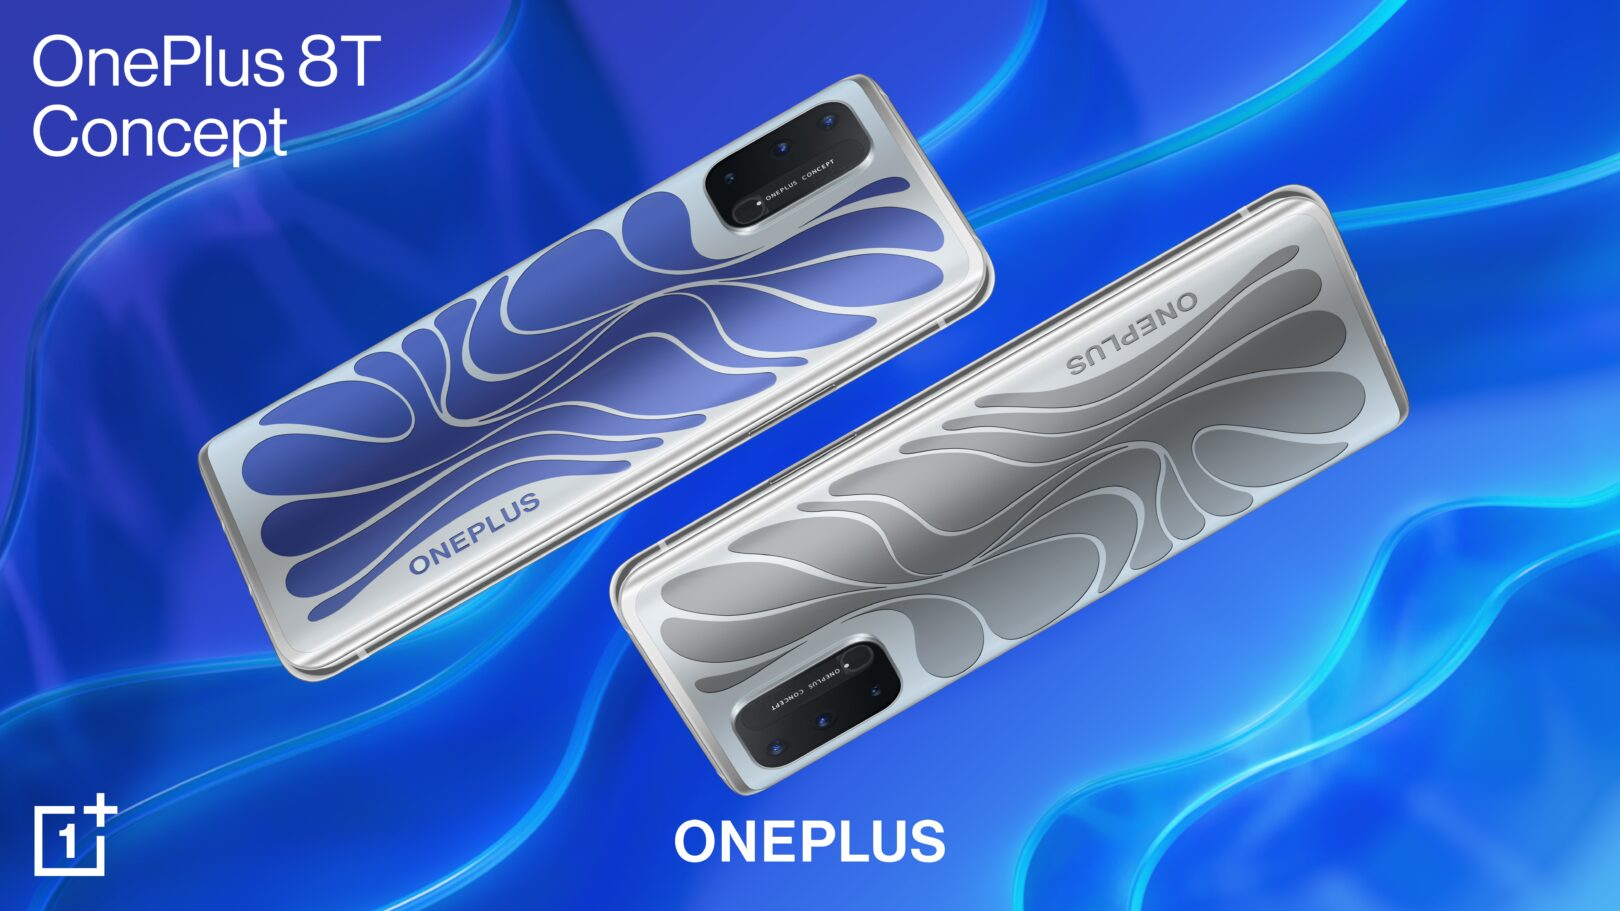 OnePlus 8T Concept is a hi-tech chameleonic handset you can't buy